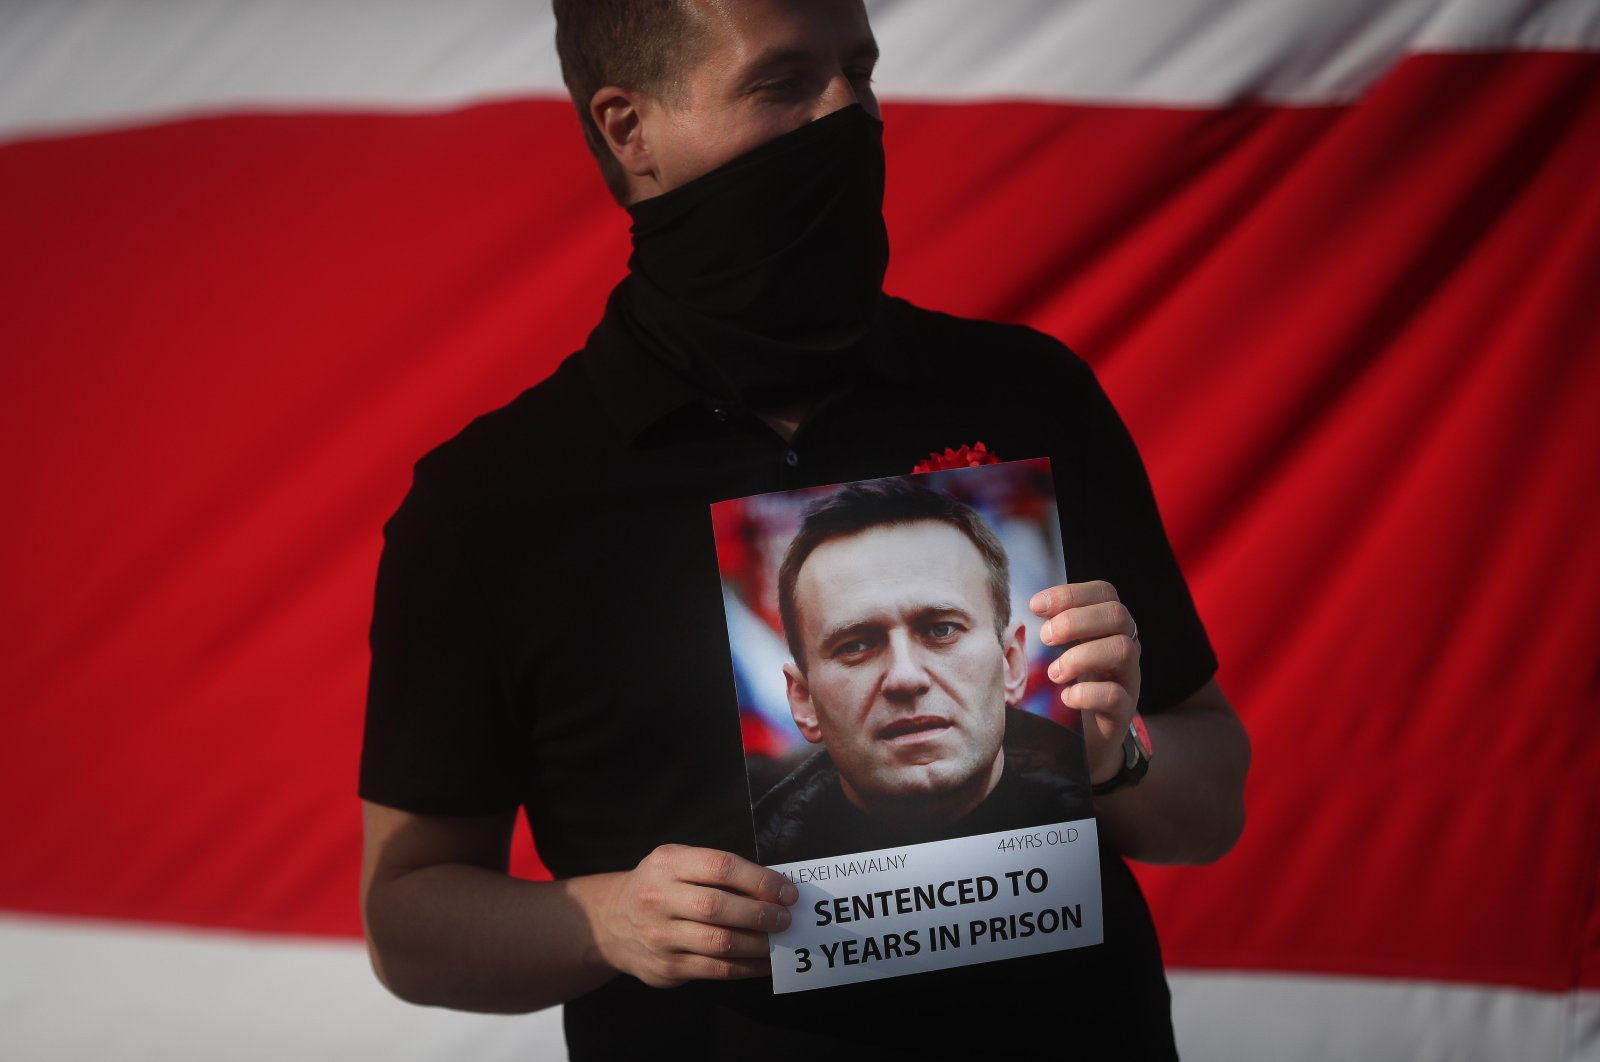 A man holds a picture of the Russian opposition leader Alexei Navalny in a demonstration in solidarity with Belarus' political prisoners, during the visit of Svetlana Tikhanovskaya in Lisbon, Portugal, March 6, 2021. (EPA Photo)